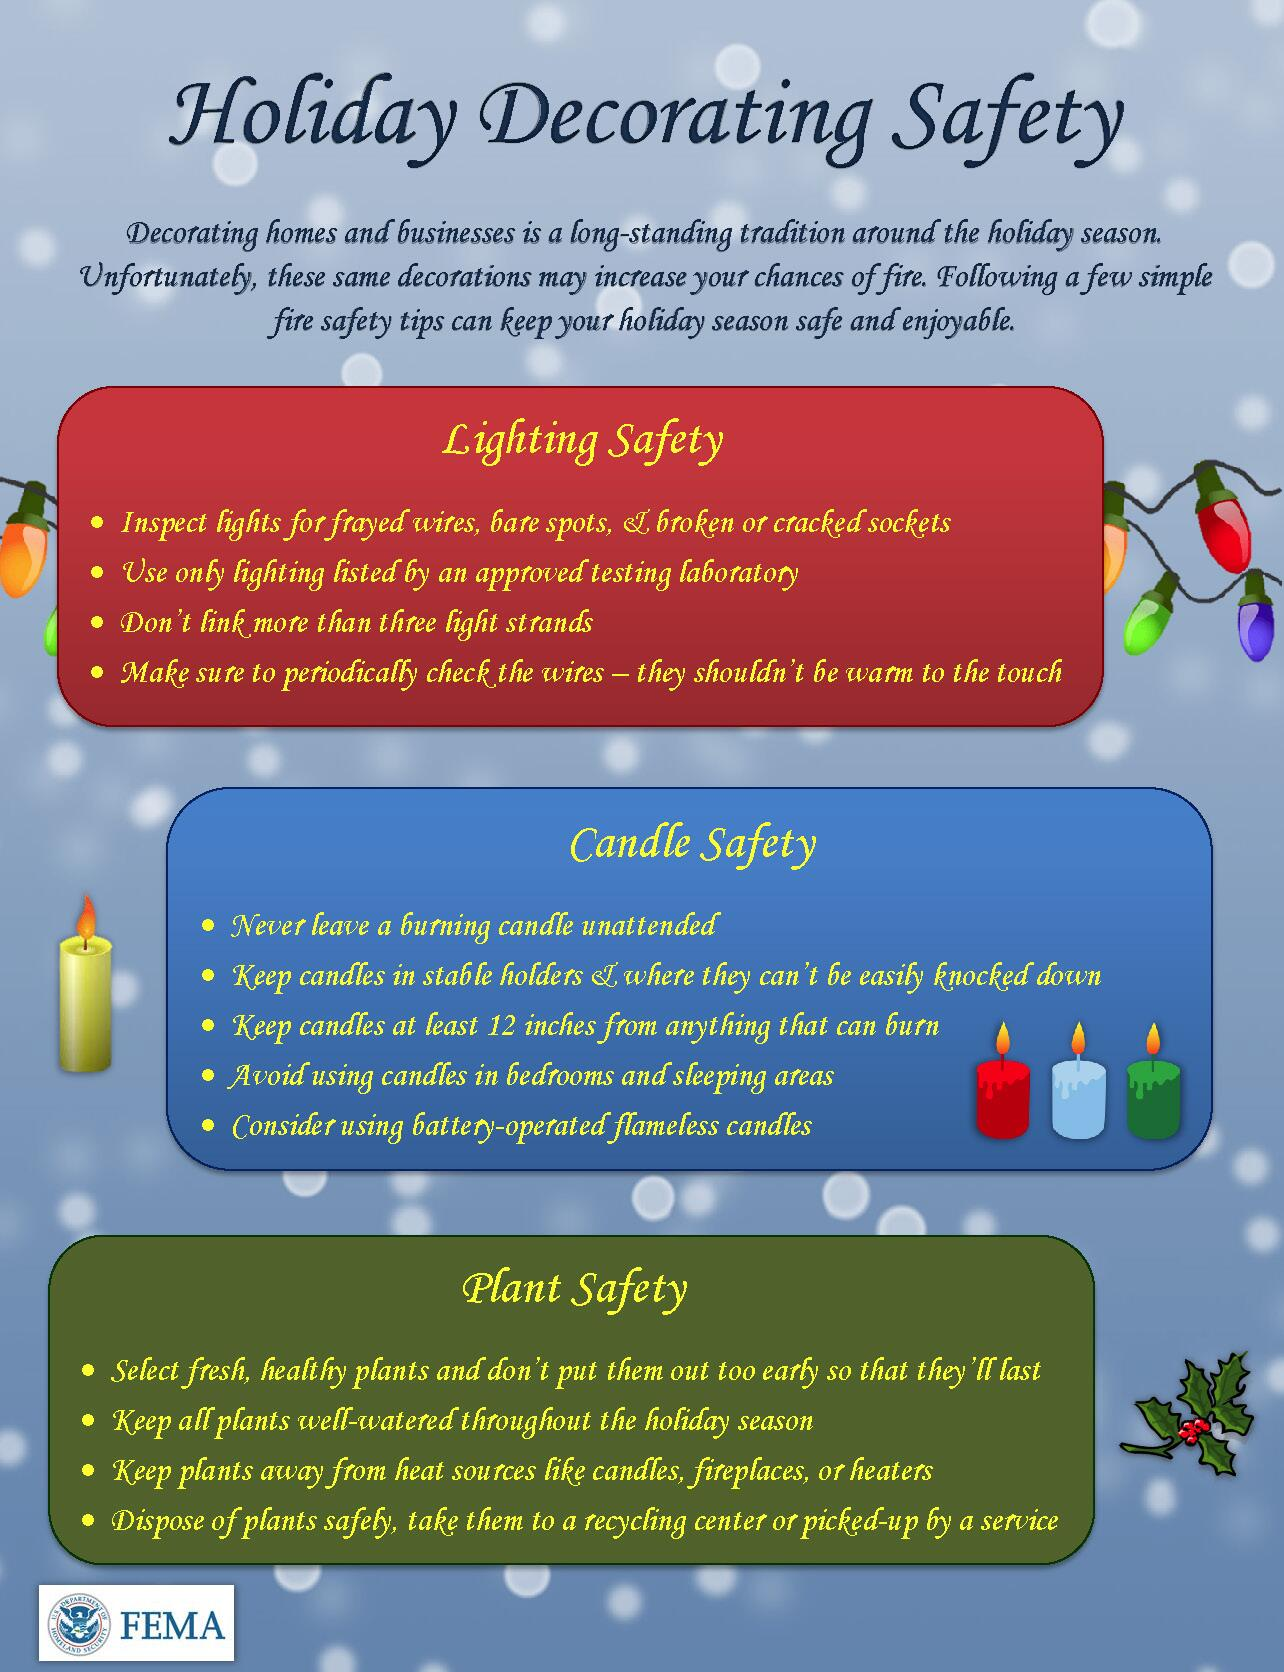 When you're #decorating for the #holiday season, make sure you're staying safe with tips from @usfire http://t.co/iqzzcfNrsV